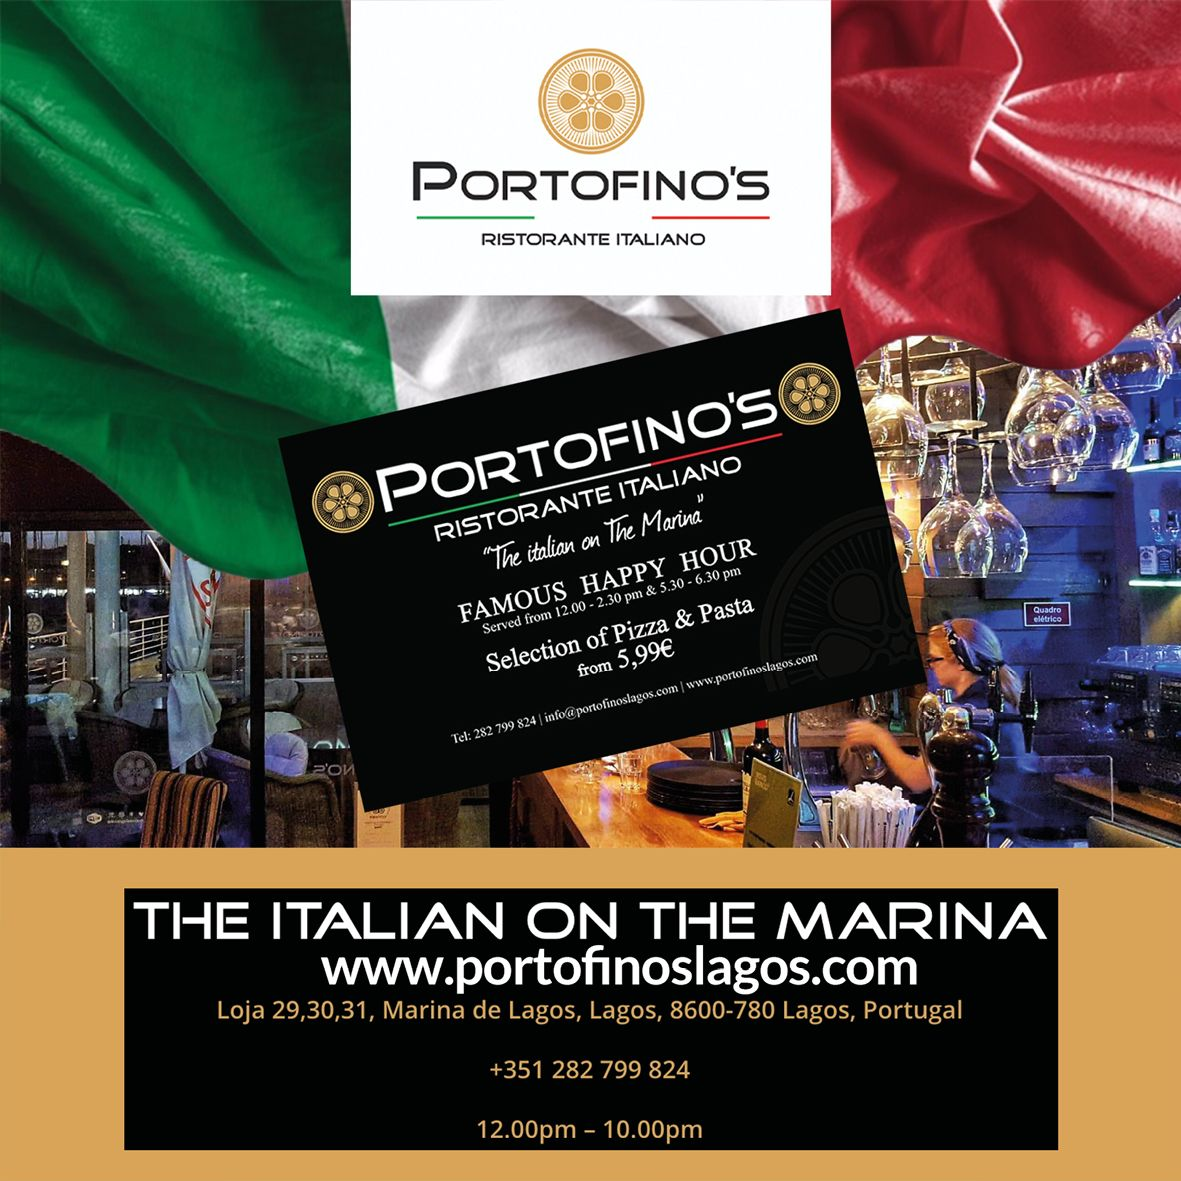 Happy hours 7 days a week 12-2 & 5.30 -6.30 everyday large selection of pizza and pasta from 5.99 Seafood special menu with locally caught fresh fish from the local fish market.  #italianfood #italianrestaurant #italiancuisine #pizza #pasta #happyhour